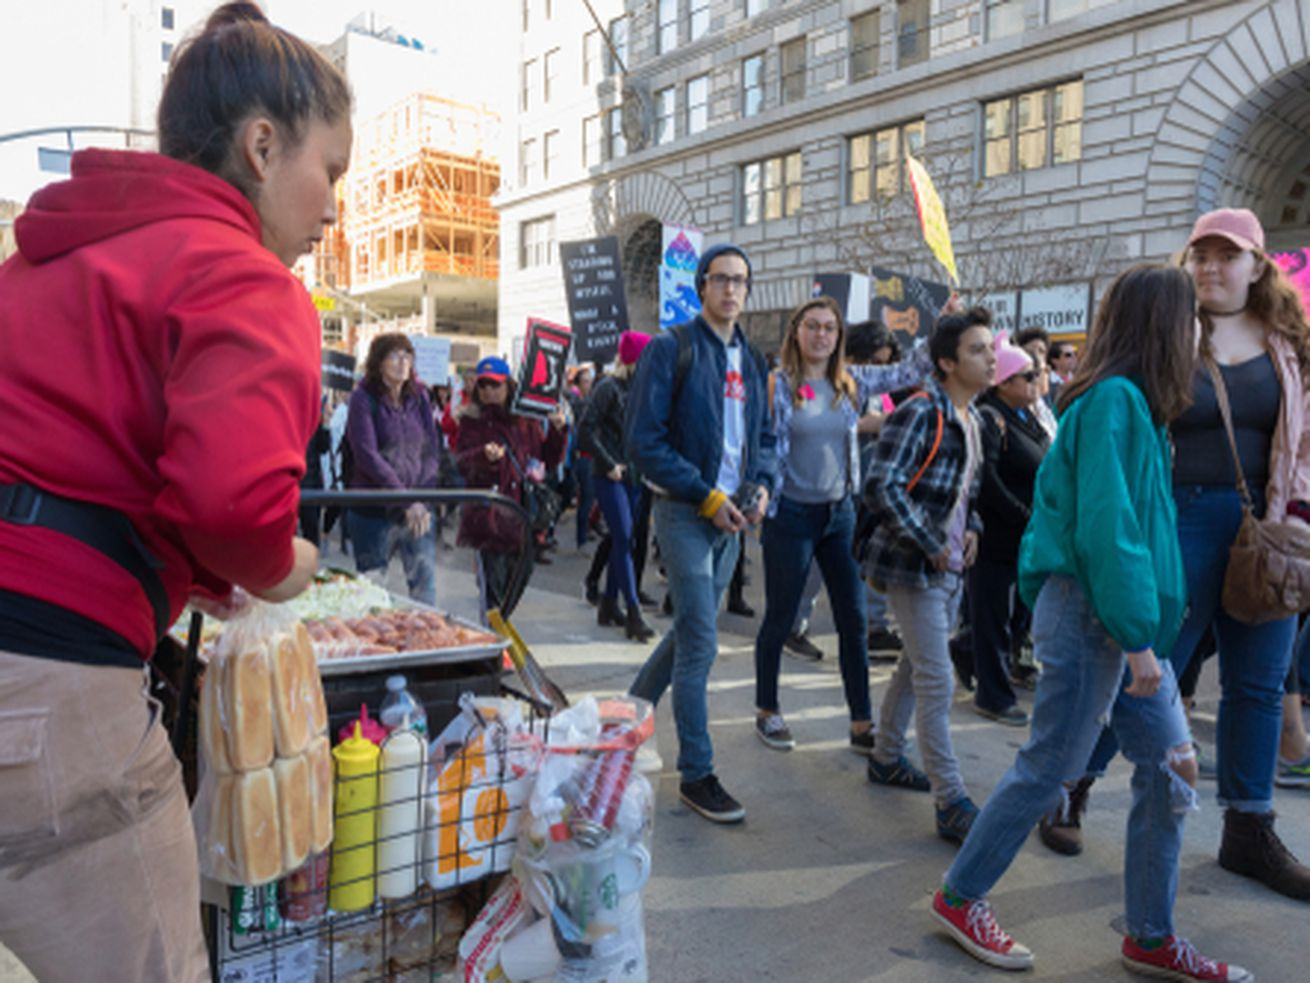 2nd Annual Women's March marchers passing by a street food vendor along the march route